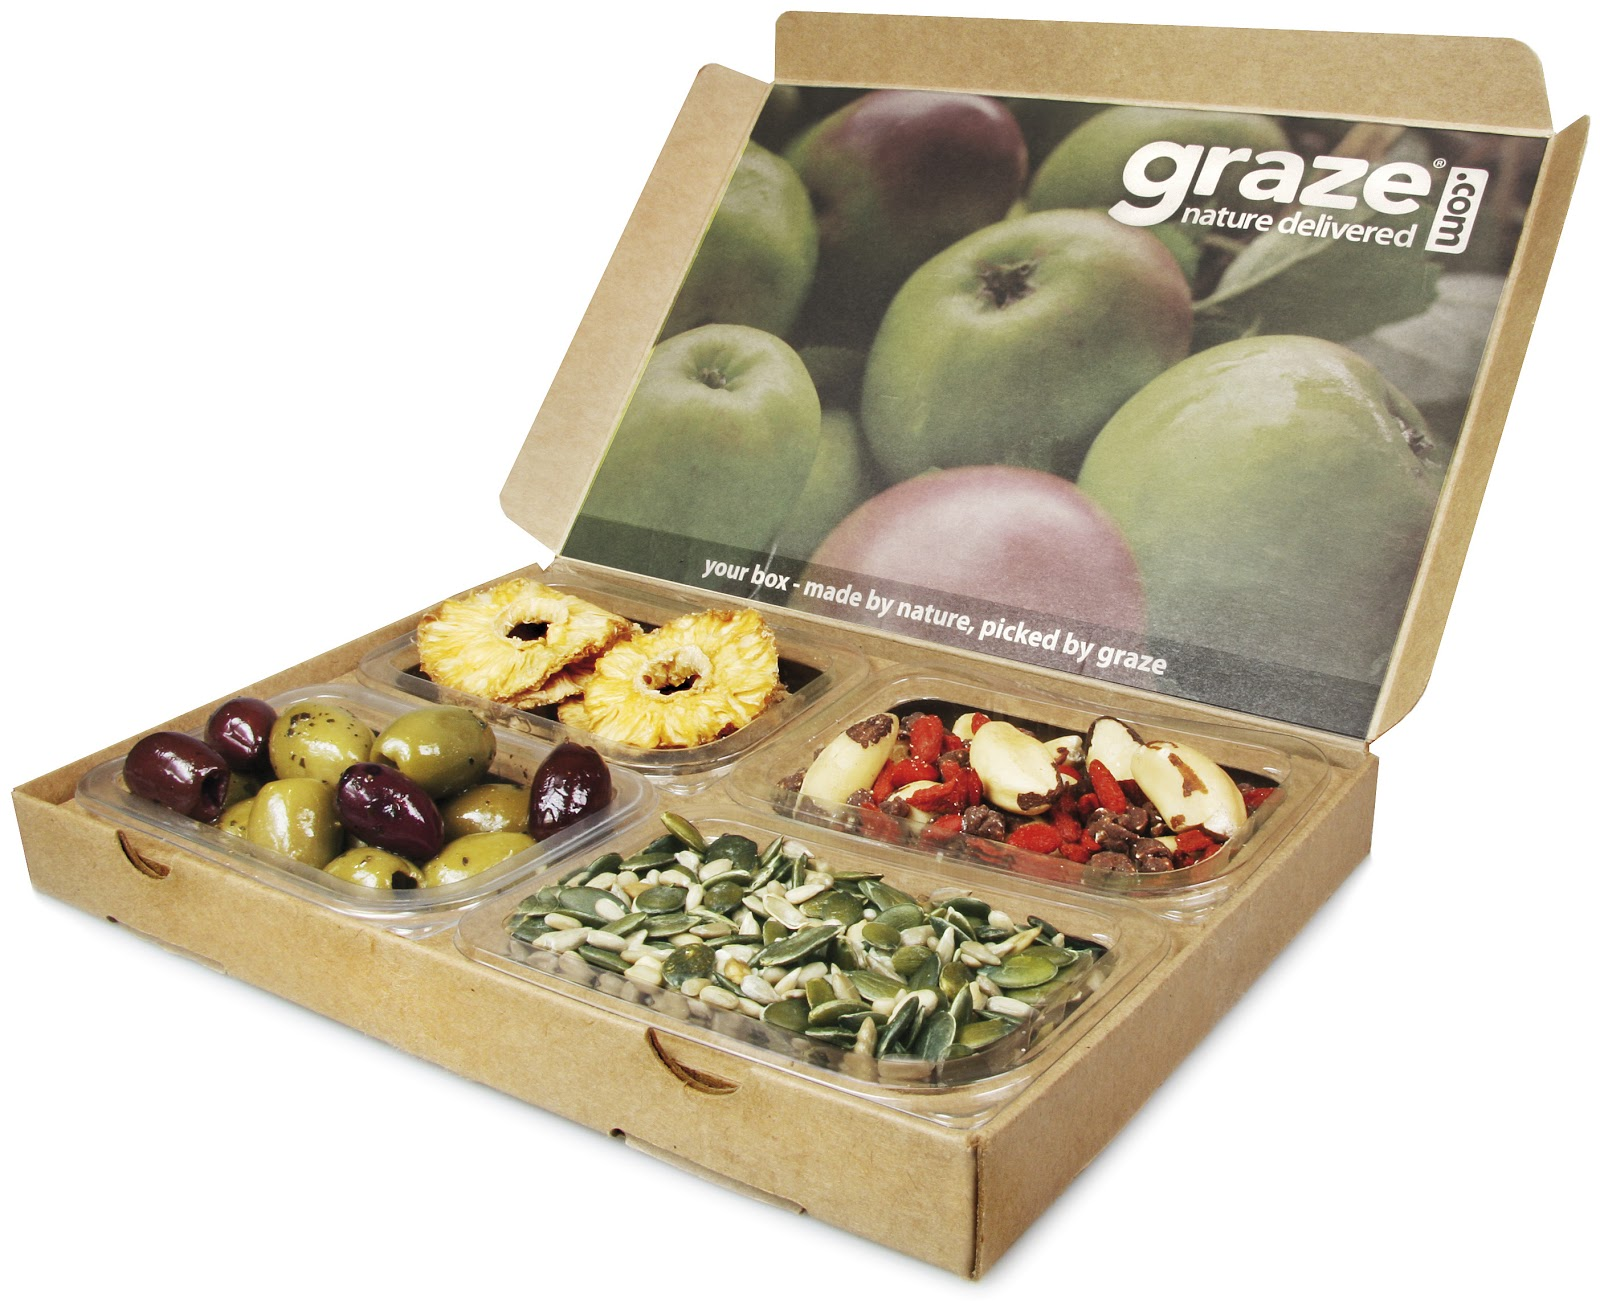 Get healthy snacks delivered to your door with Graze boxes. Have your boxes filled with tasty snacks, including cakes and fruit, nuts and seeds, and earn top cashback rewards.